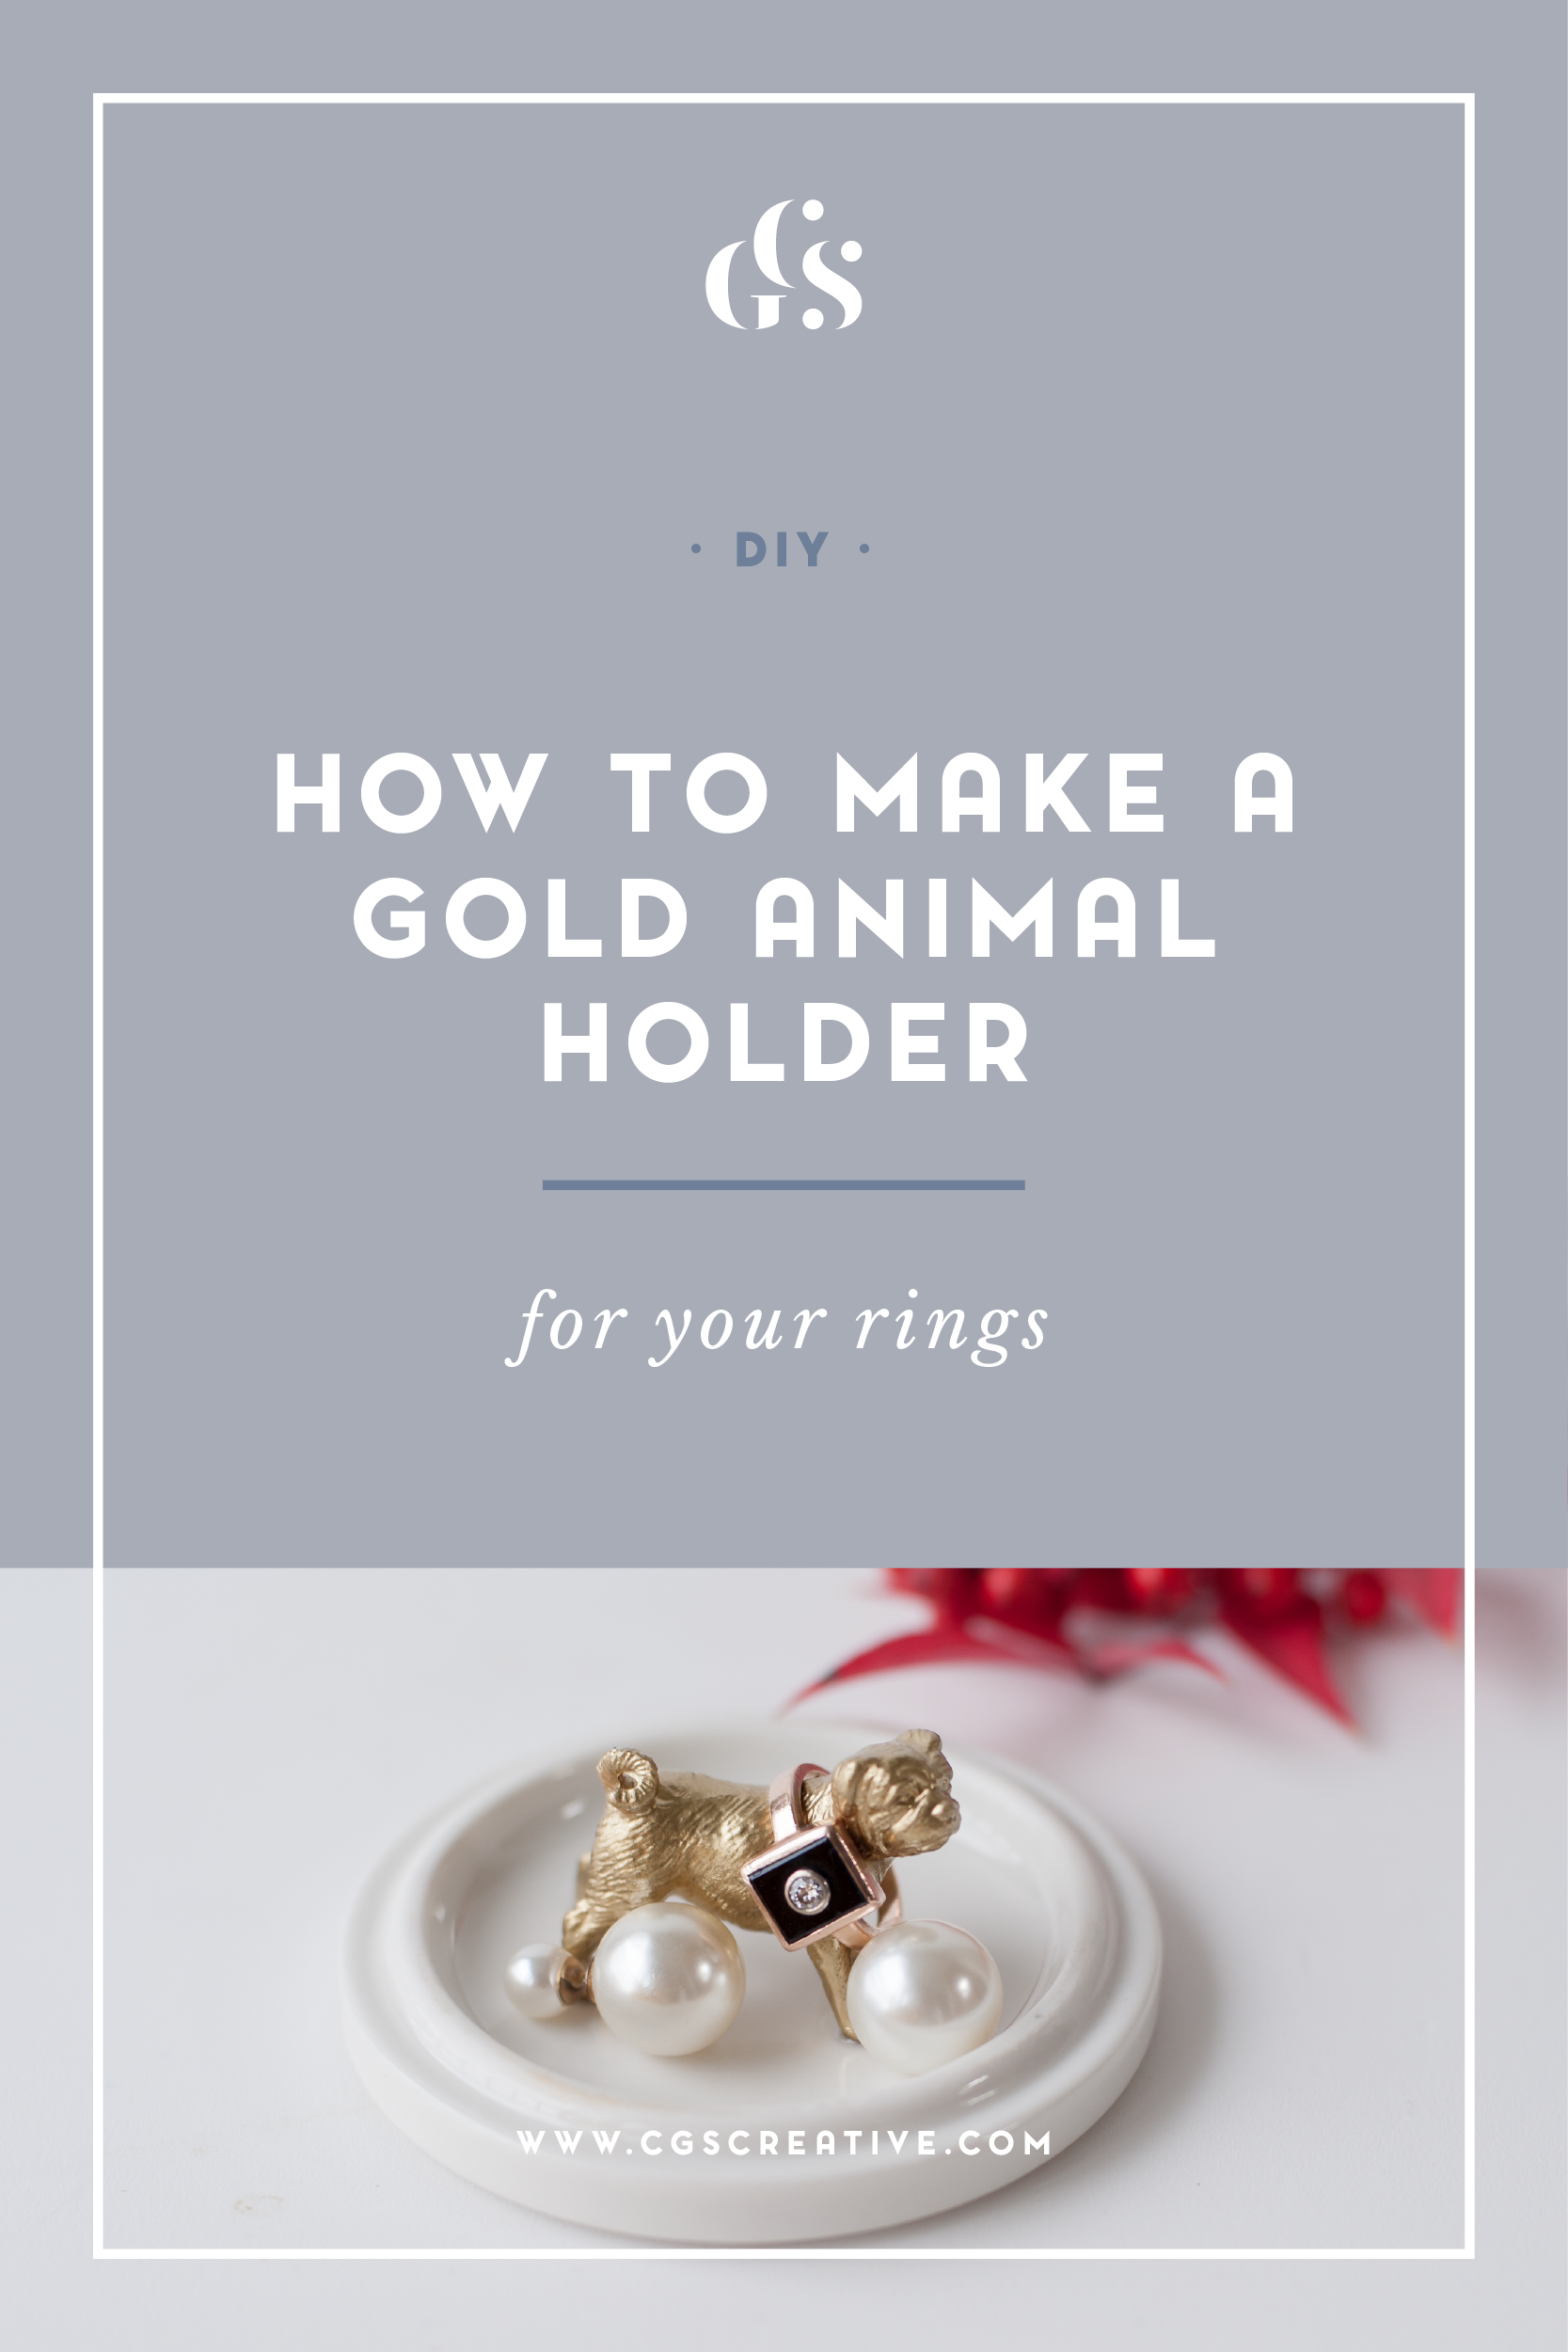 DIY How to make a Gold animal ring holder